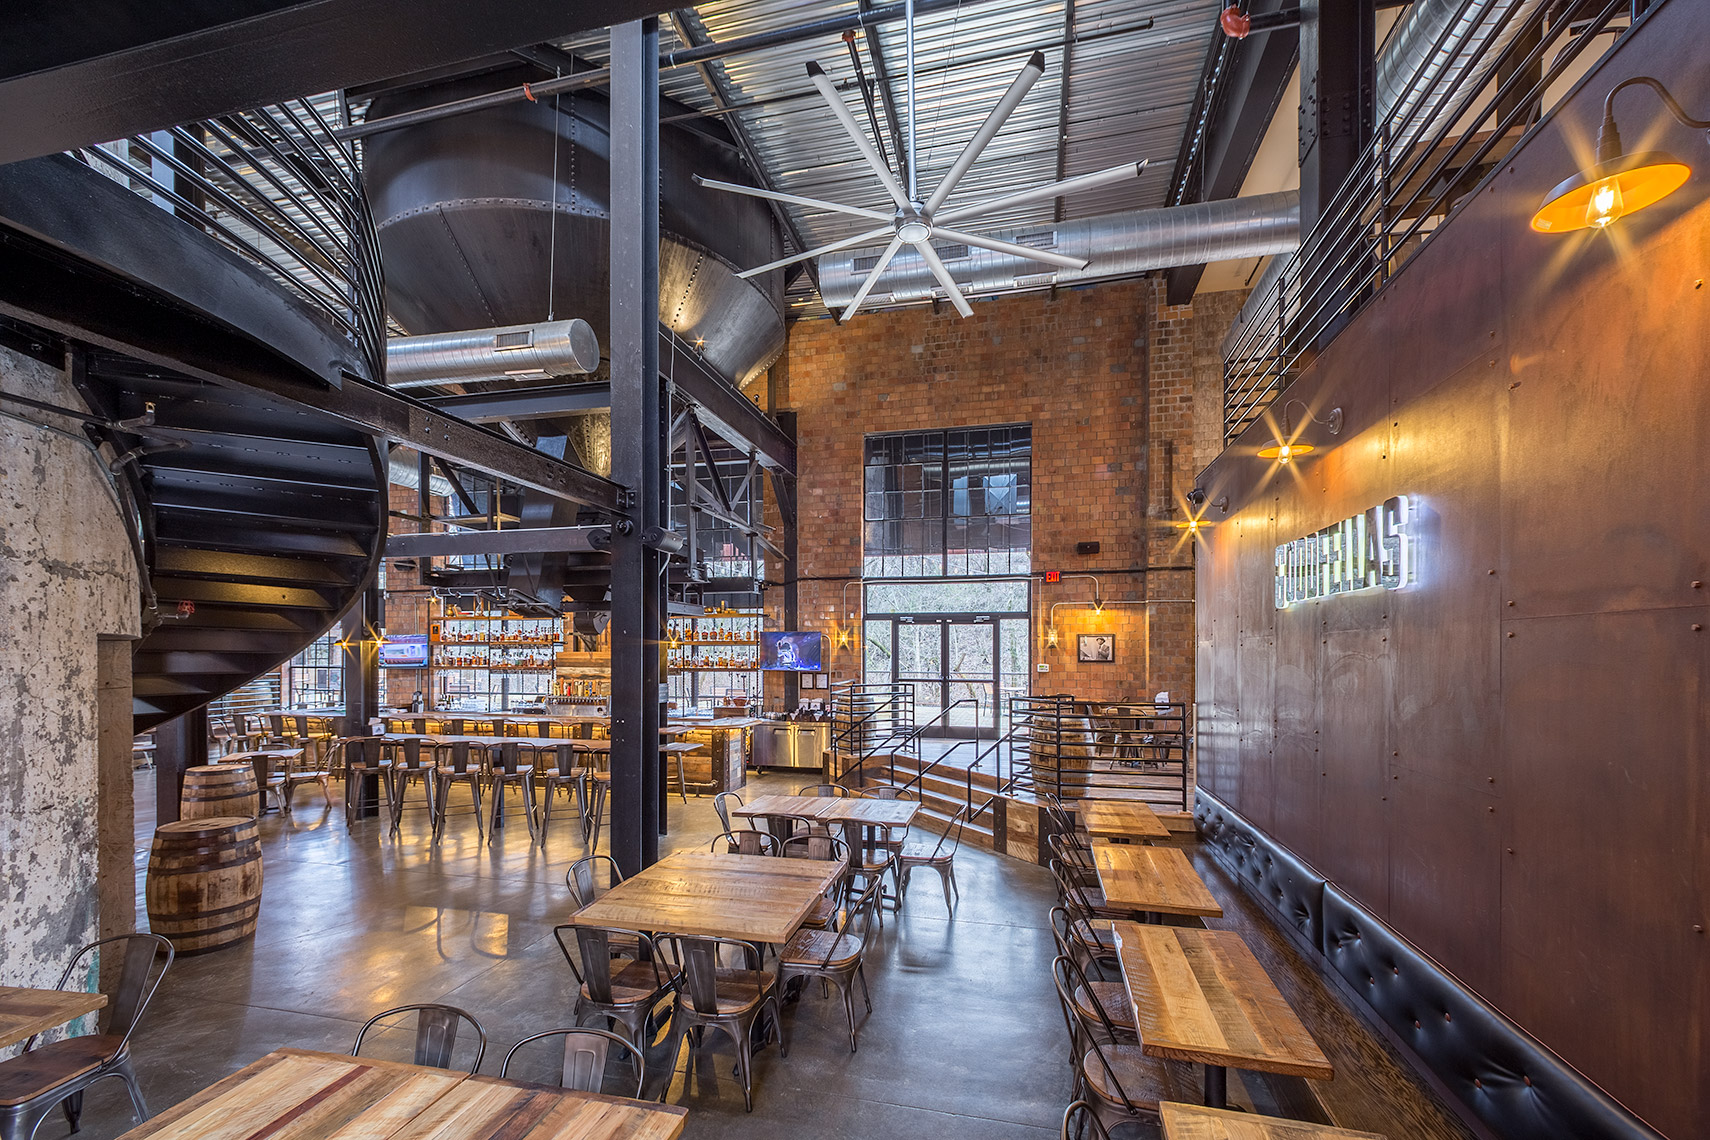 Goodfellas Pizza interior at Manchester Street Distillery District in Lexington